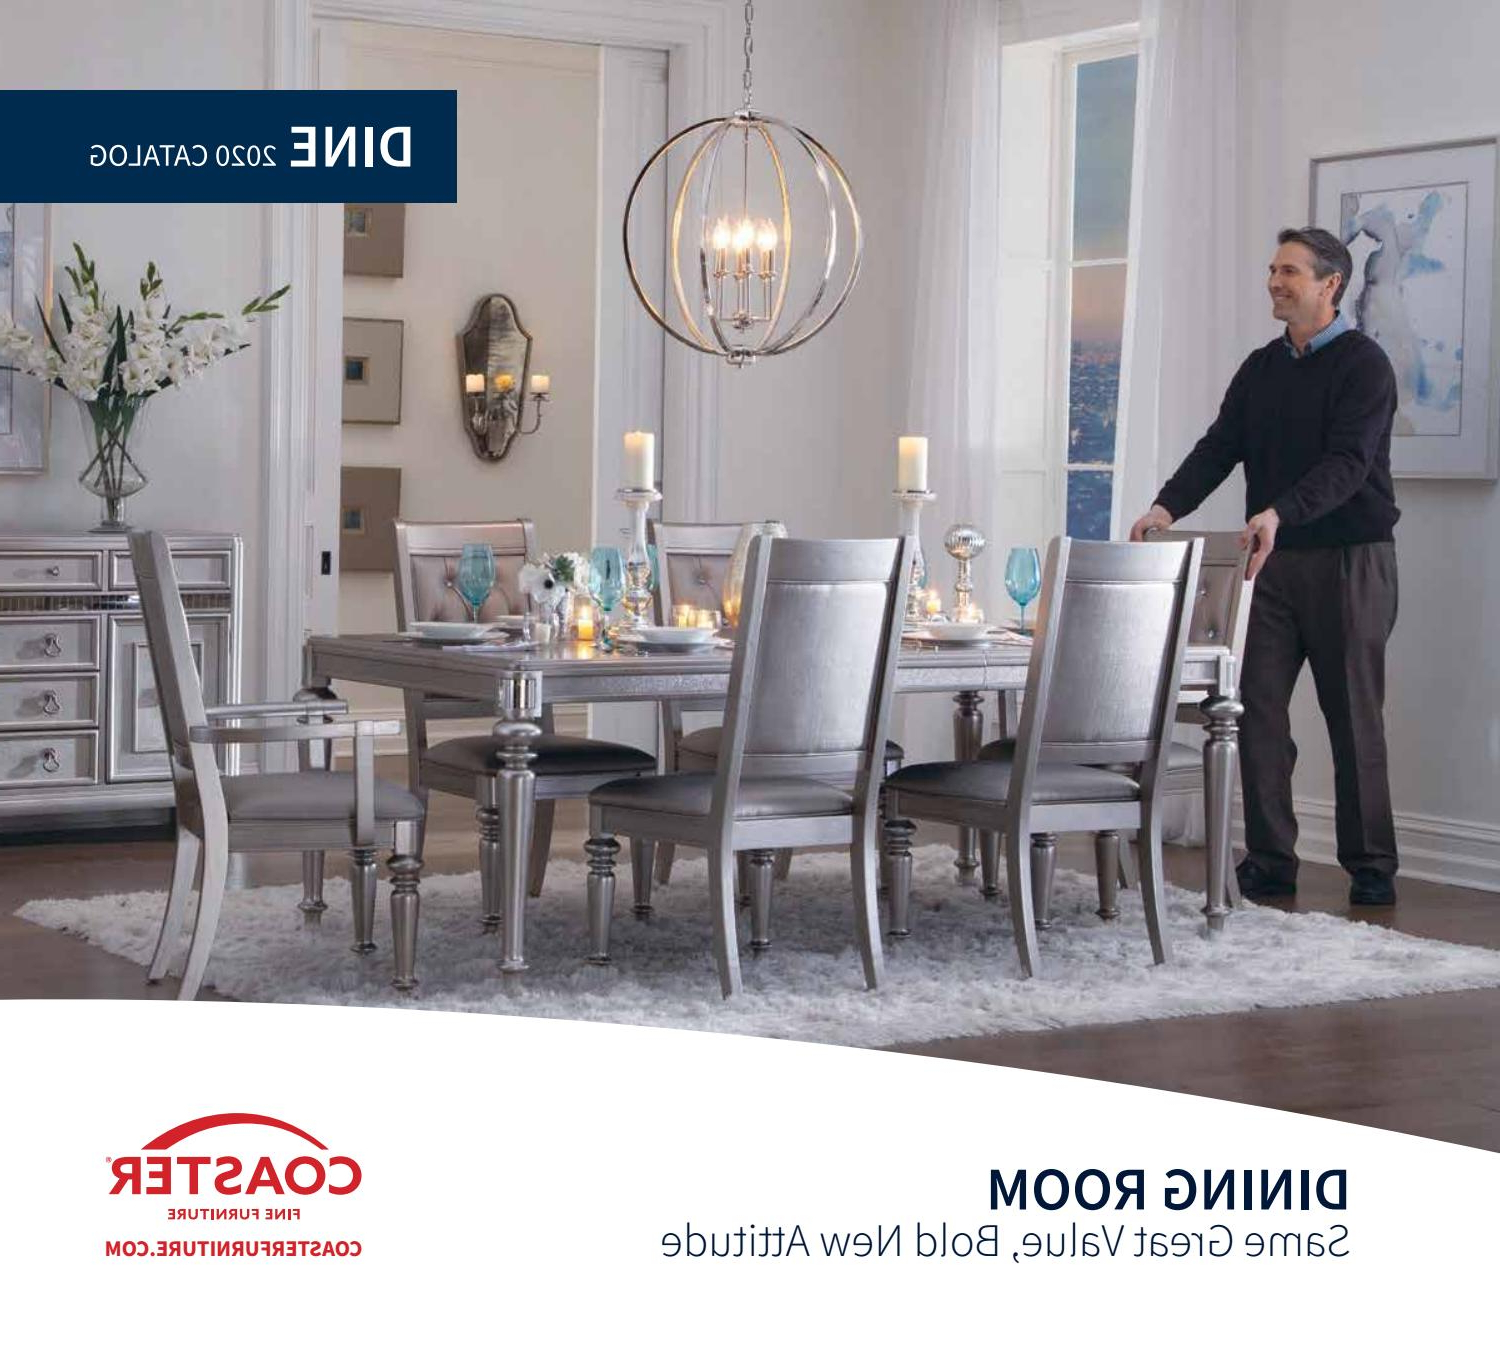 2020 Coaster Catalog Dinecoaster Company Of America - Issuu throughout Newest Transitional Driftwood Casual Dining Tables